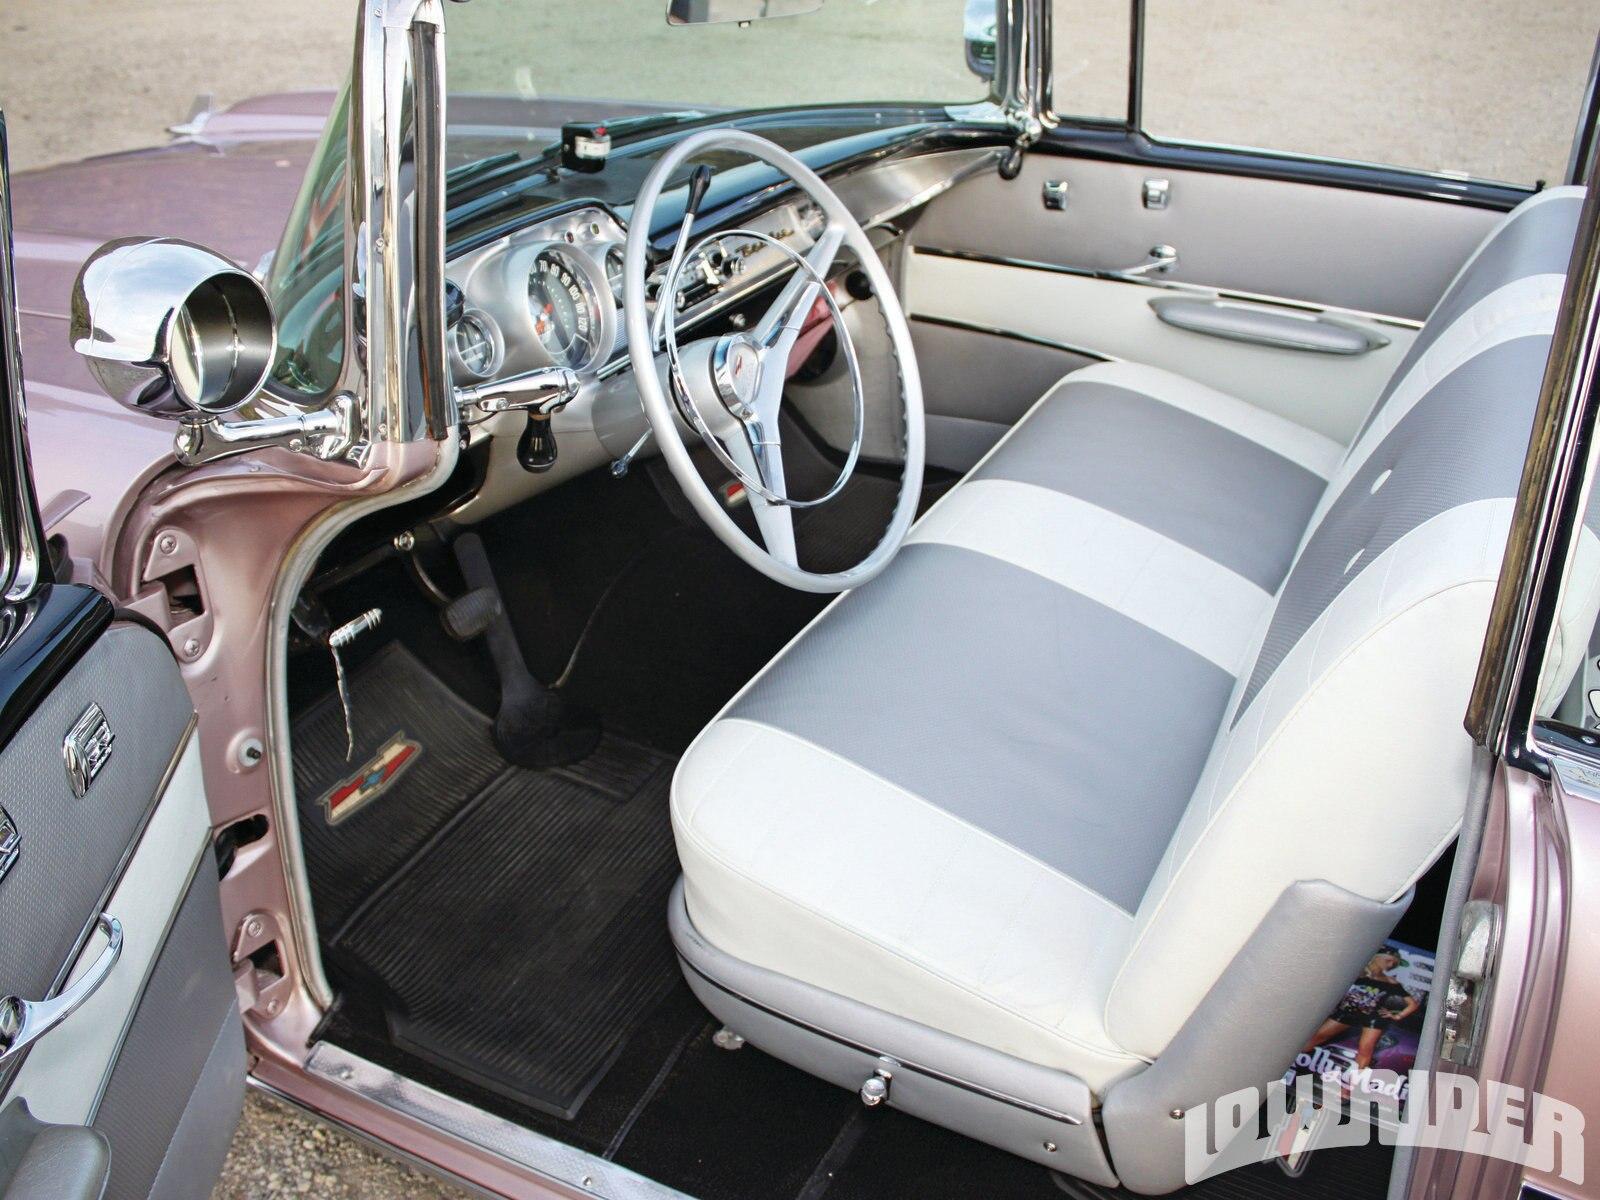 1951 Chevy Bel Air Interior All About Chevrolet 4 Door Pristine 1956 Dashboard Stock Image Source Sedan